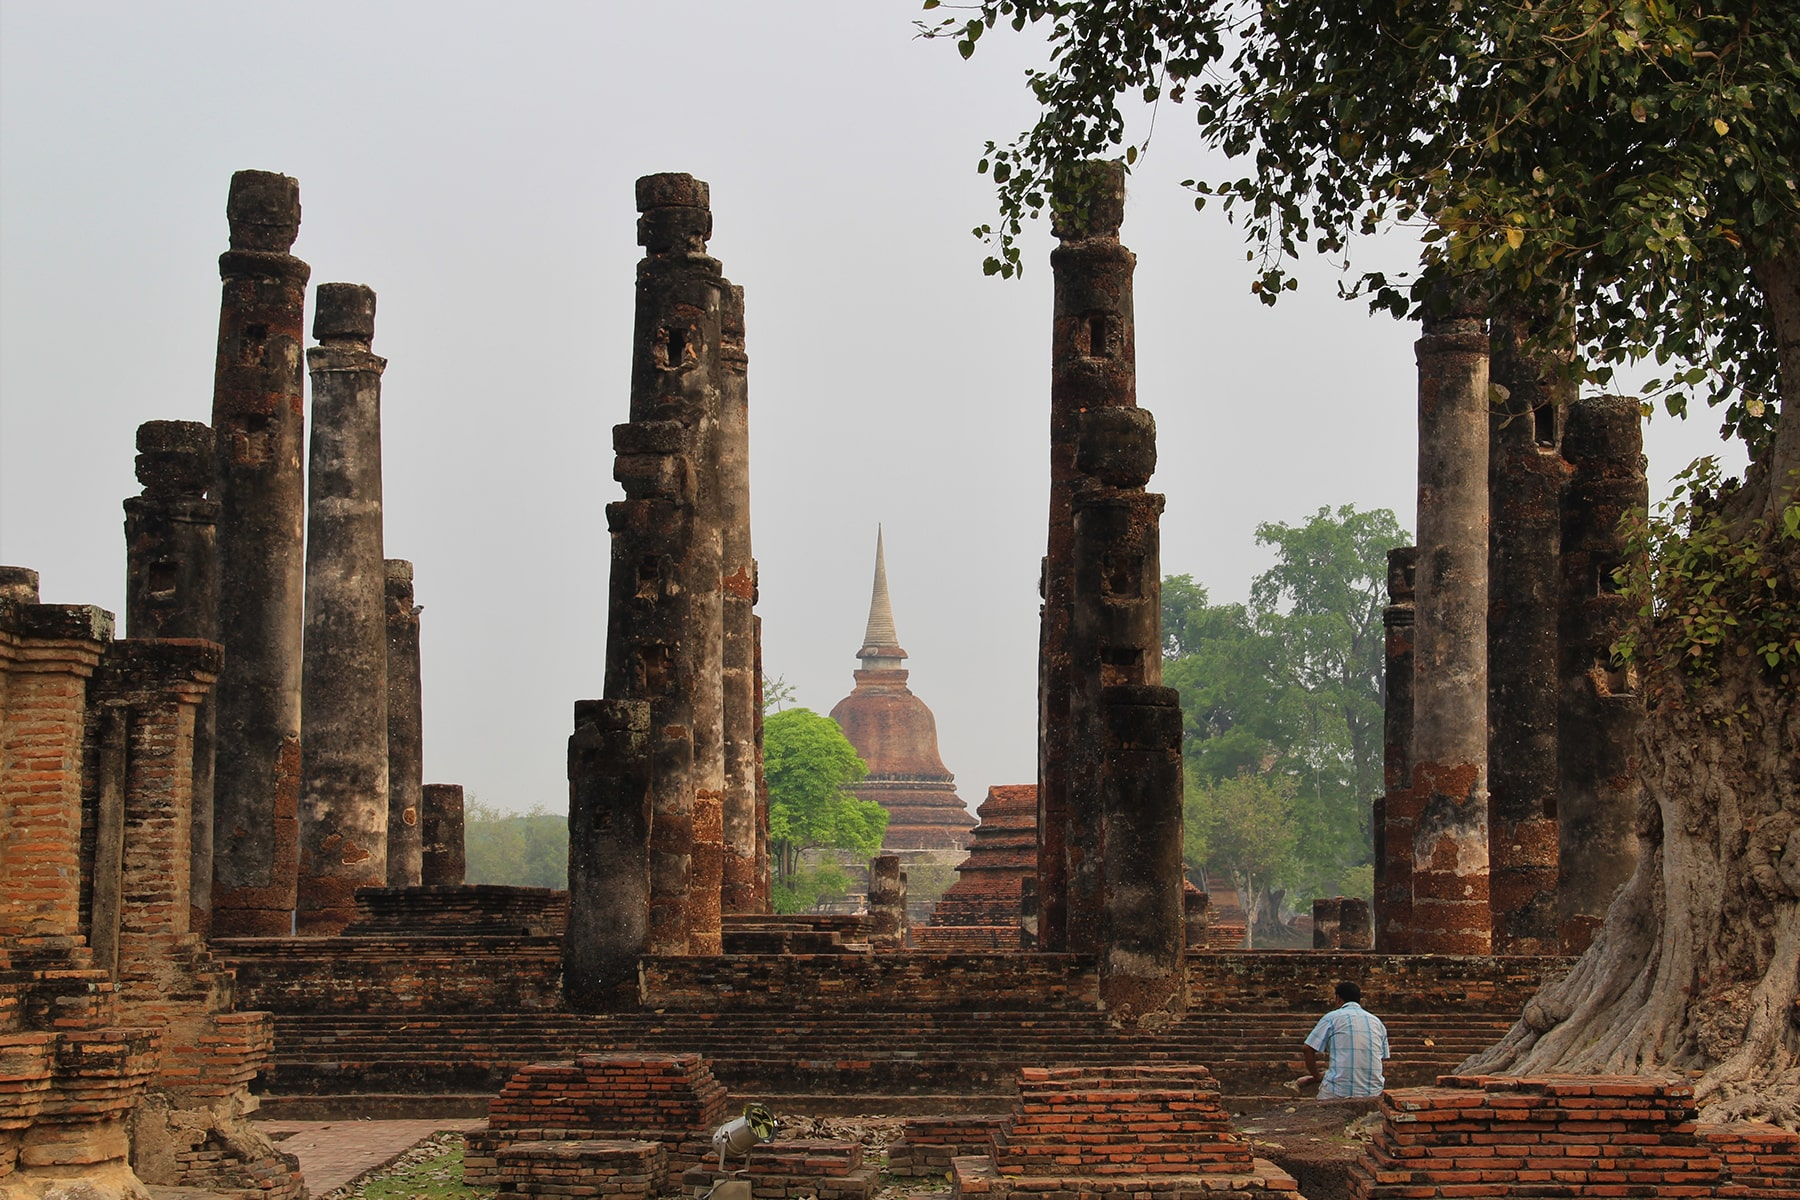 Man sitting in Old Sukhothai columns ruins beside a big tree